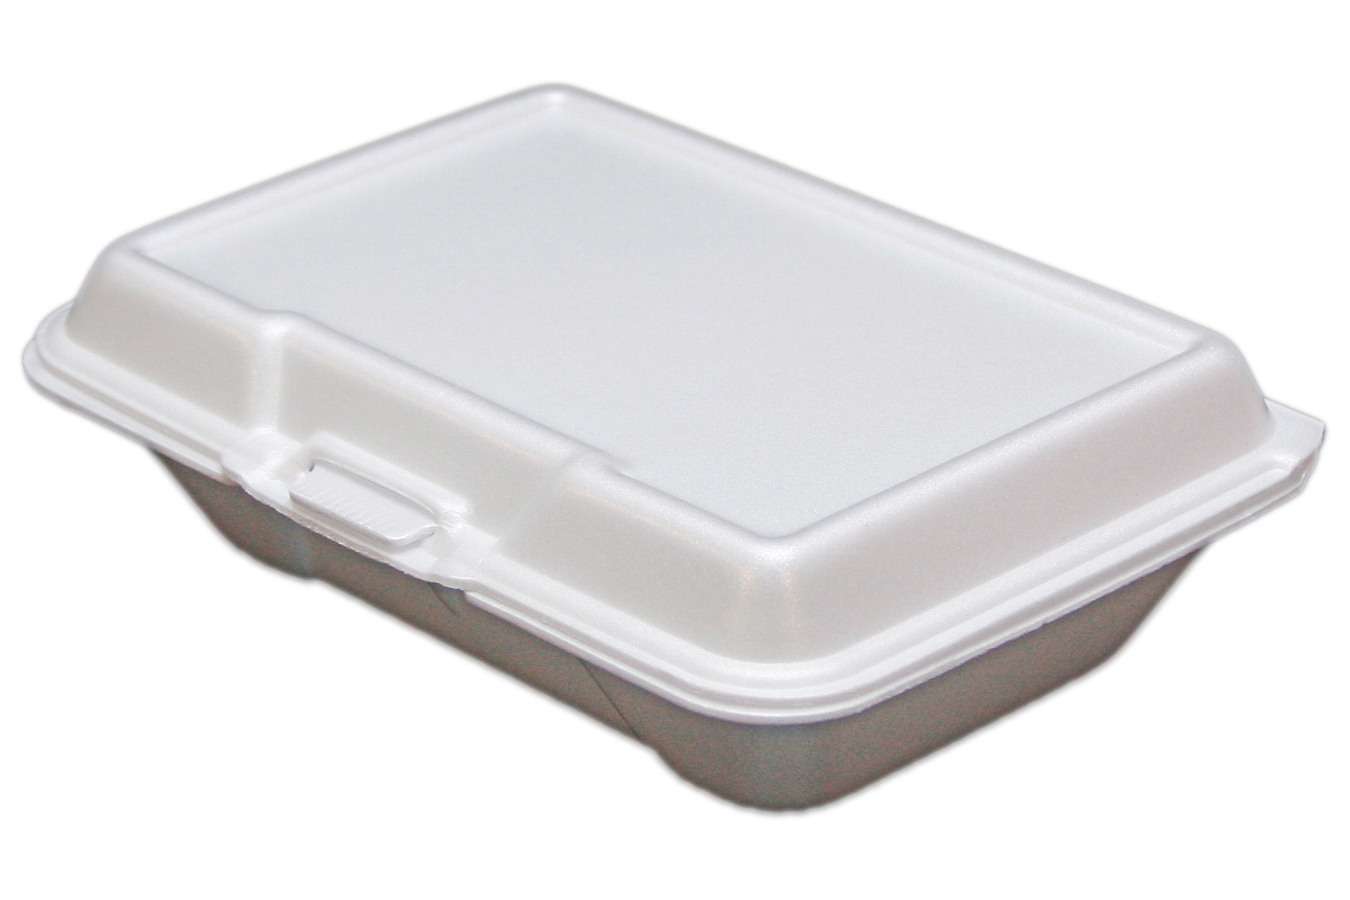 EcoPax 205 Foam Hinged Container White 9.25x6.375x2.875 2/100 (200 ct.)